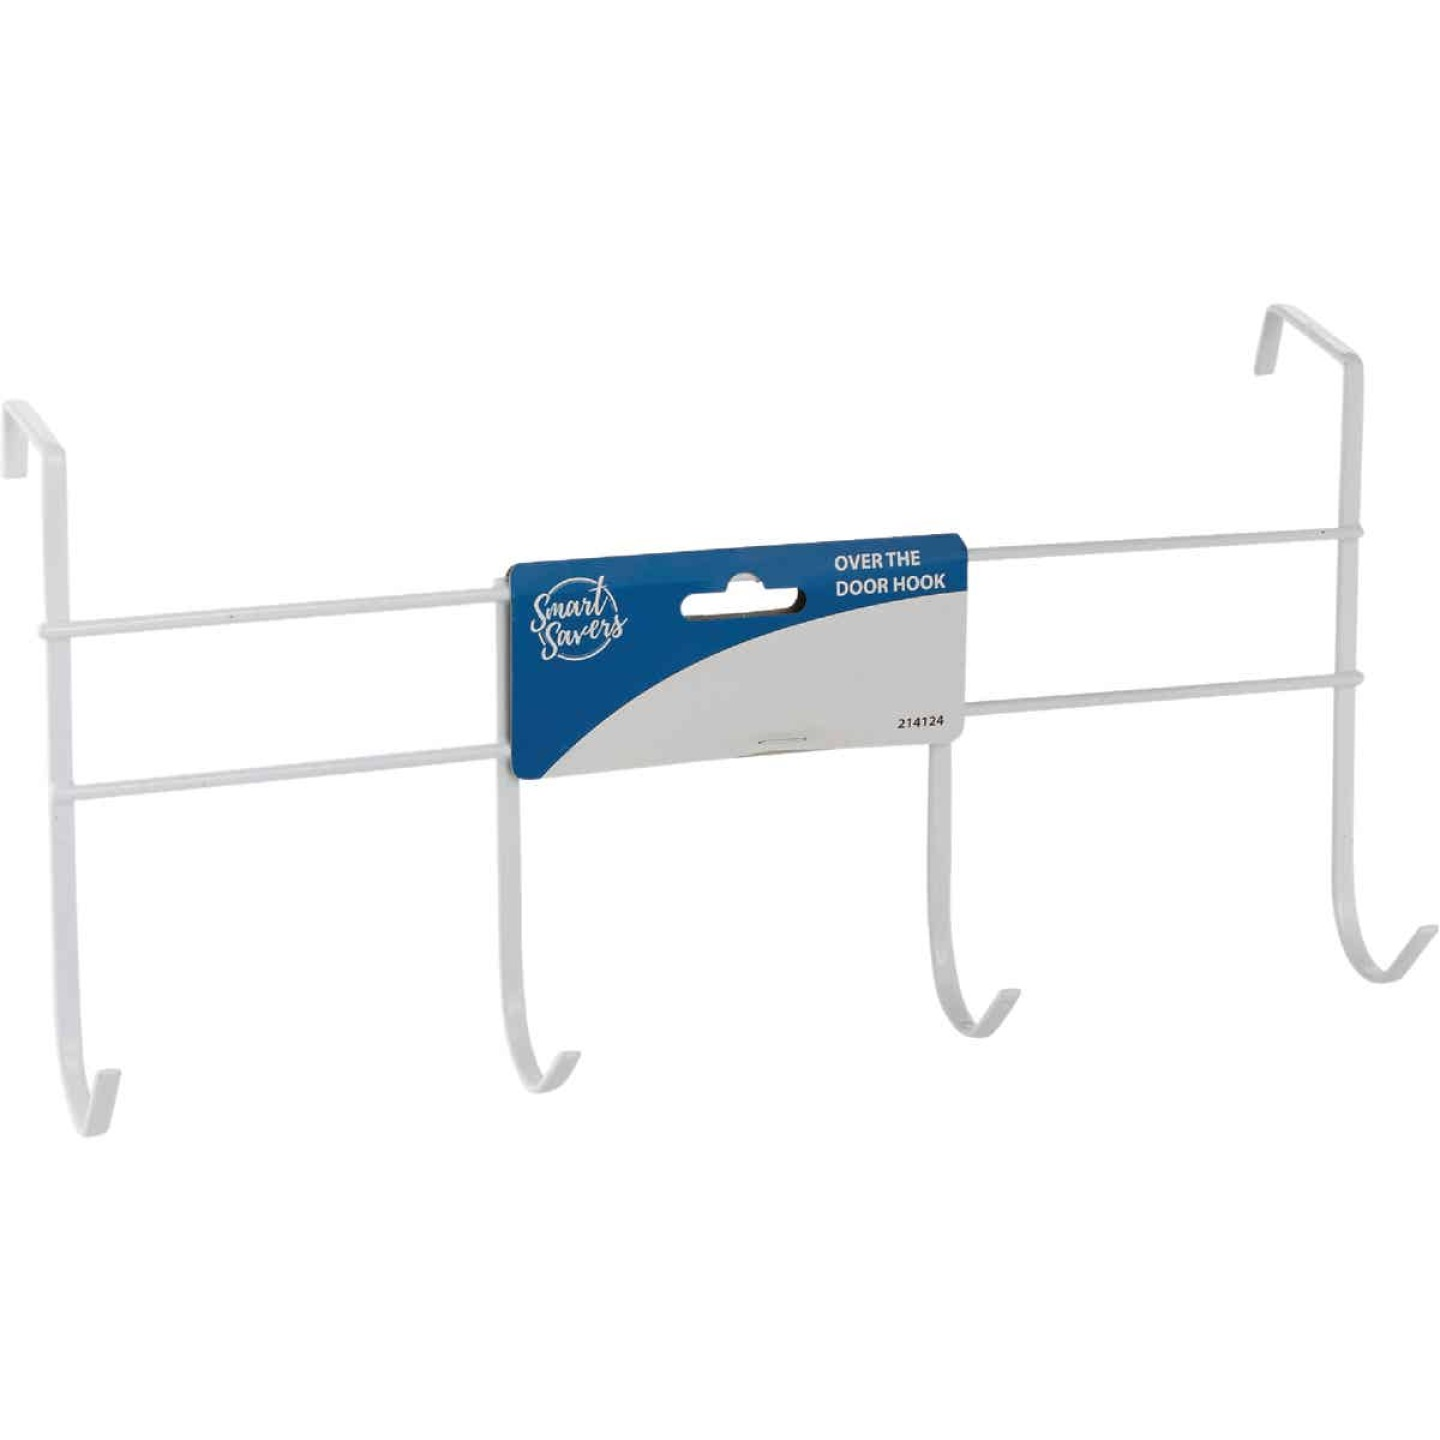 Smart Savers White Iron Over The Door Hook Image 1